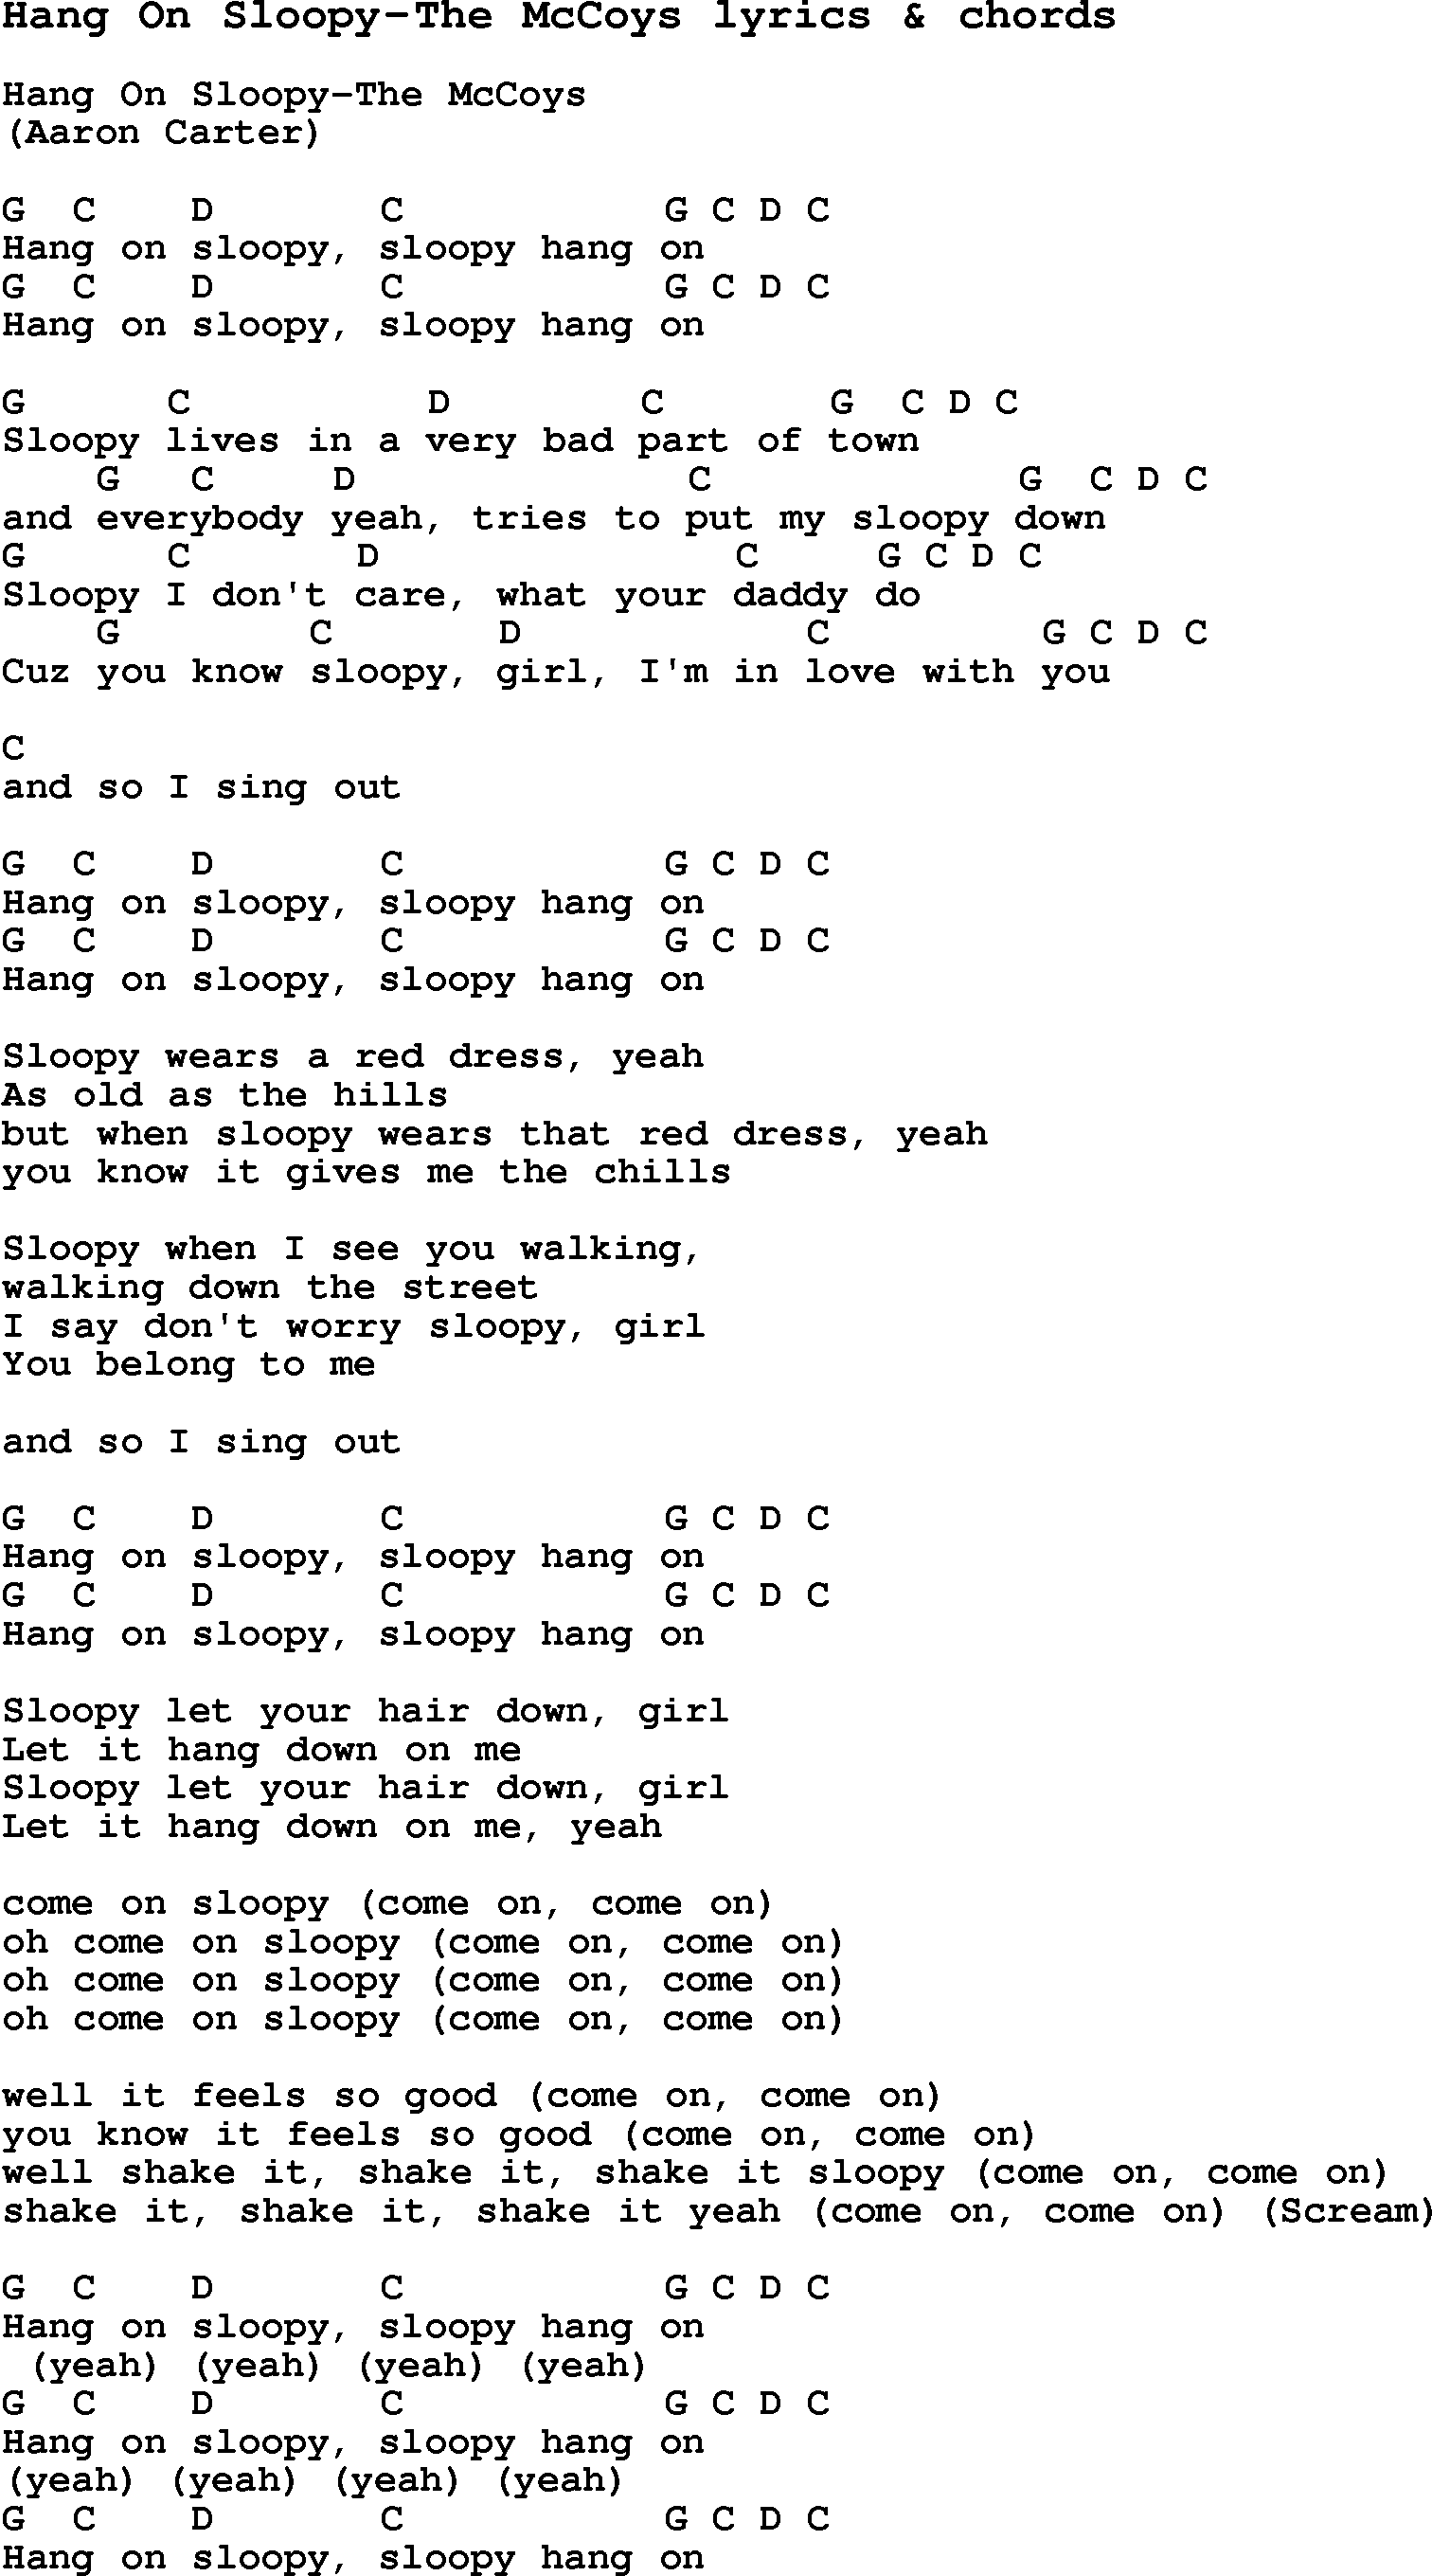 Love Song Lyrics For Hang On Sloopy The Mccoys With Chords For